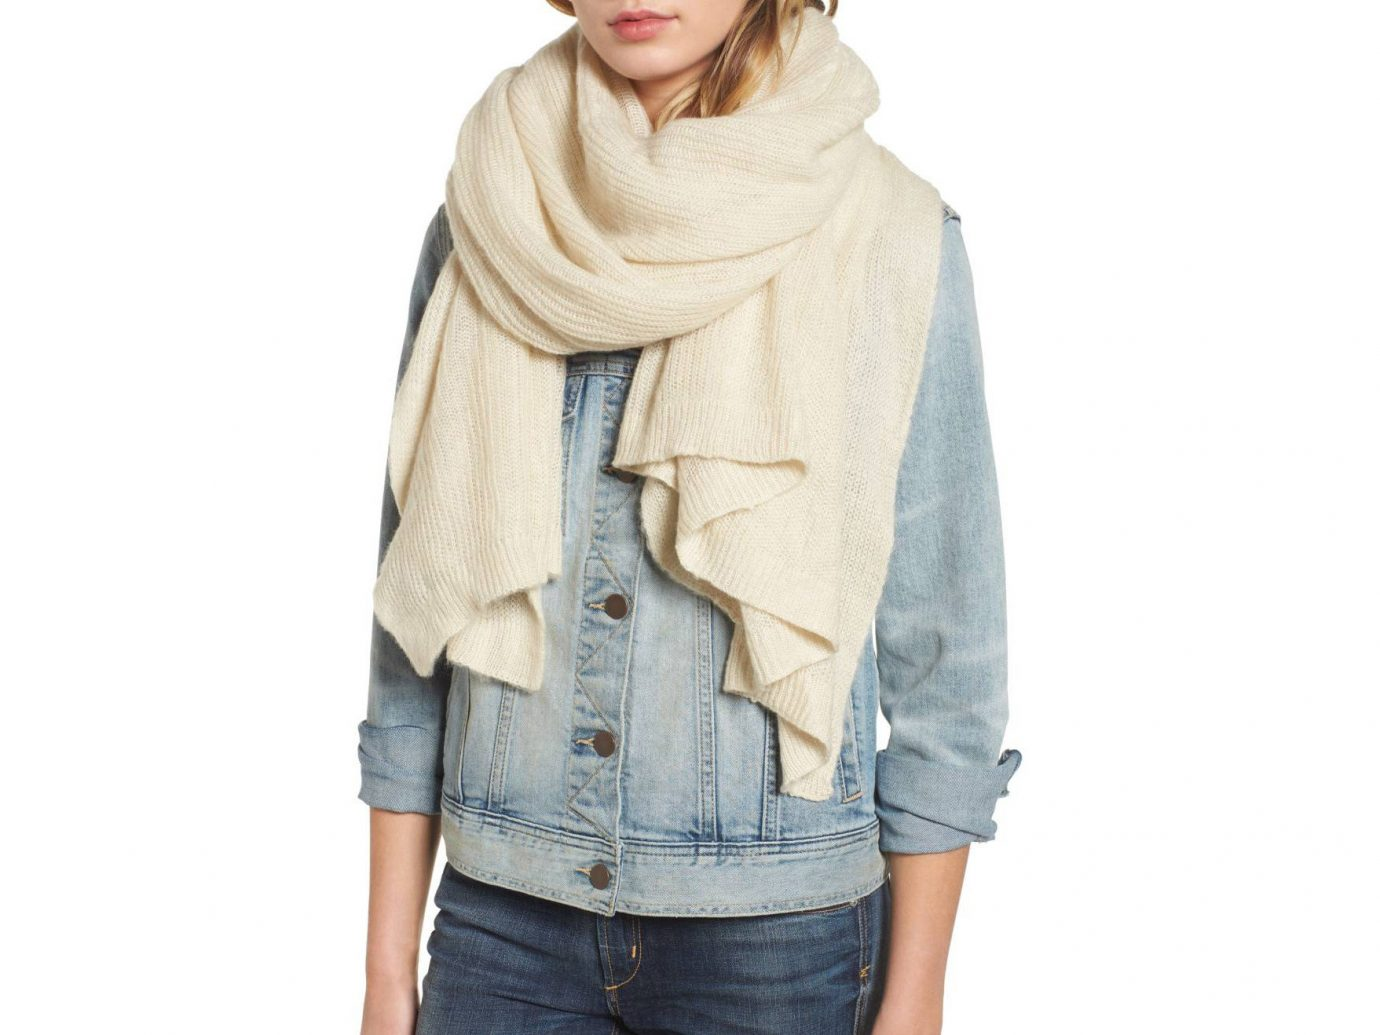 Travel Shop person clothing wearing stole scarf jacket beige neck posing